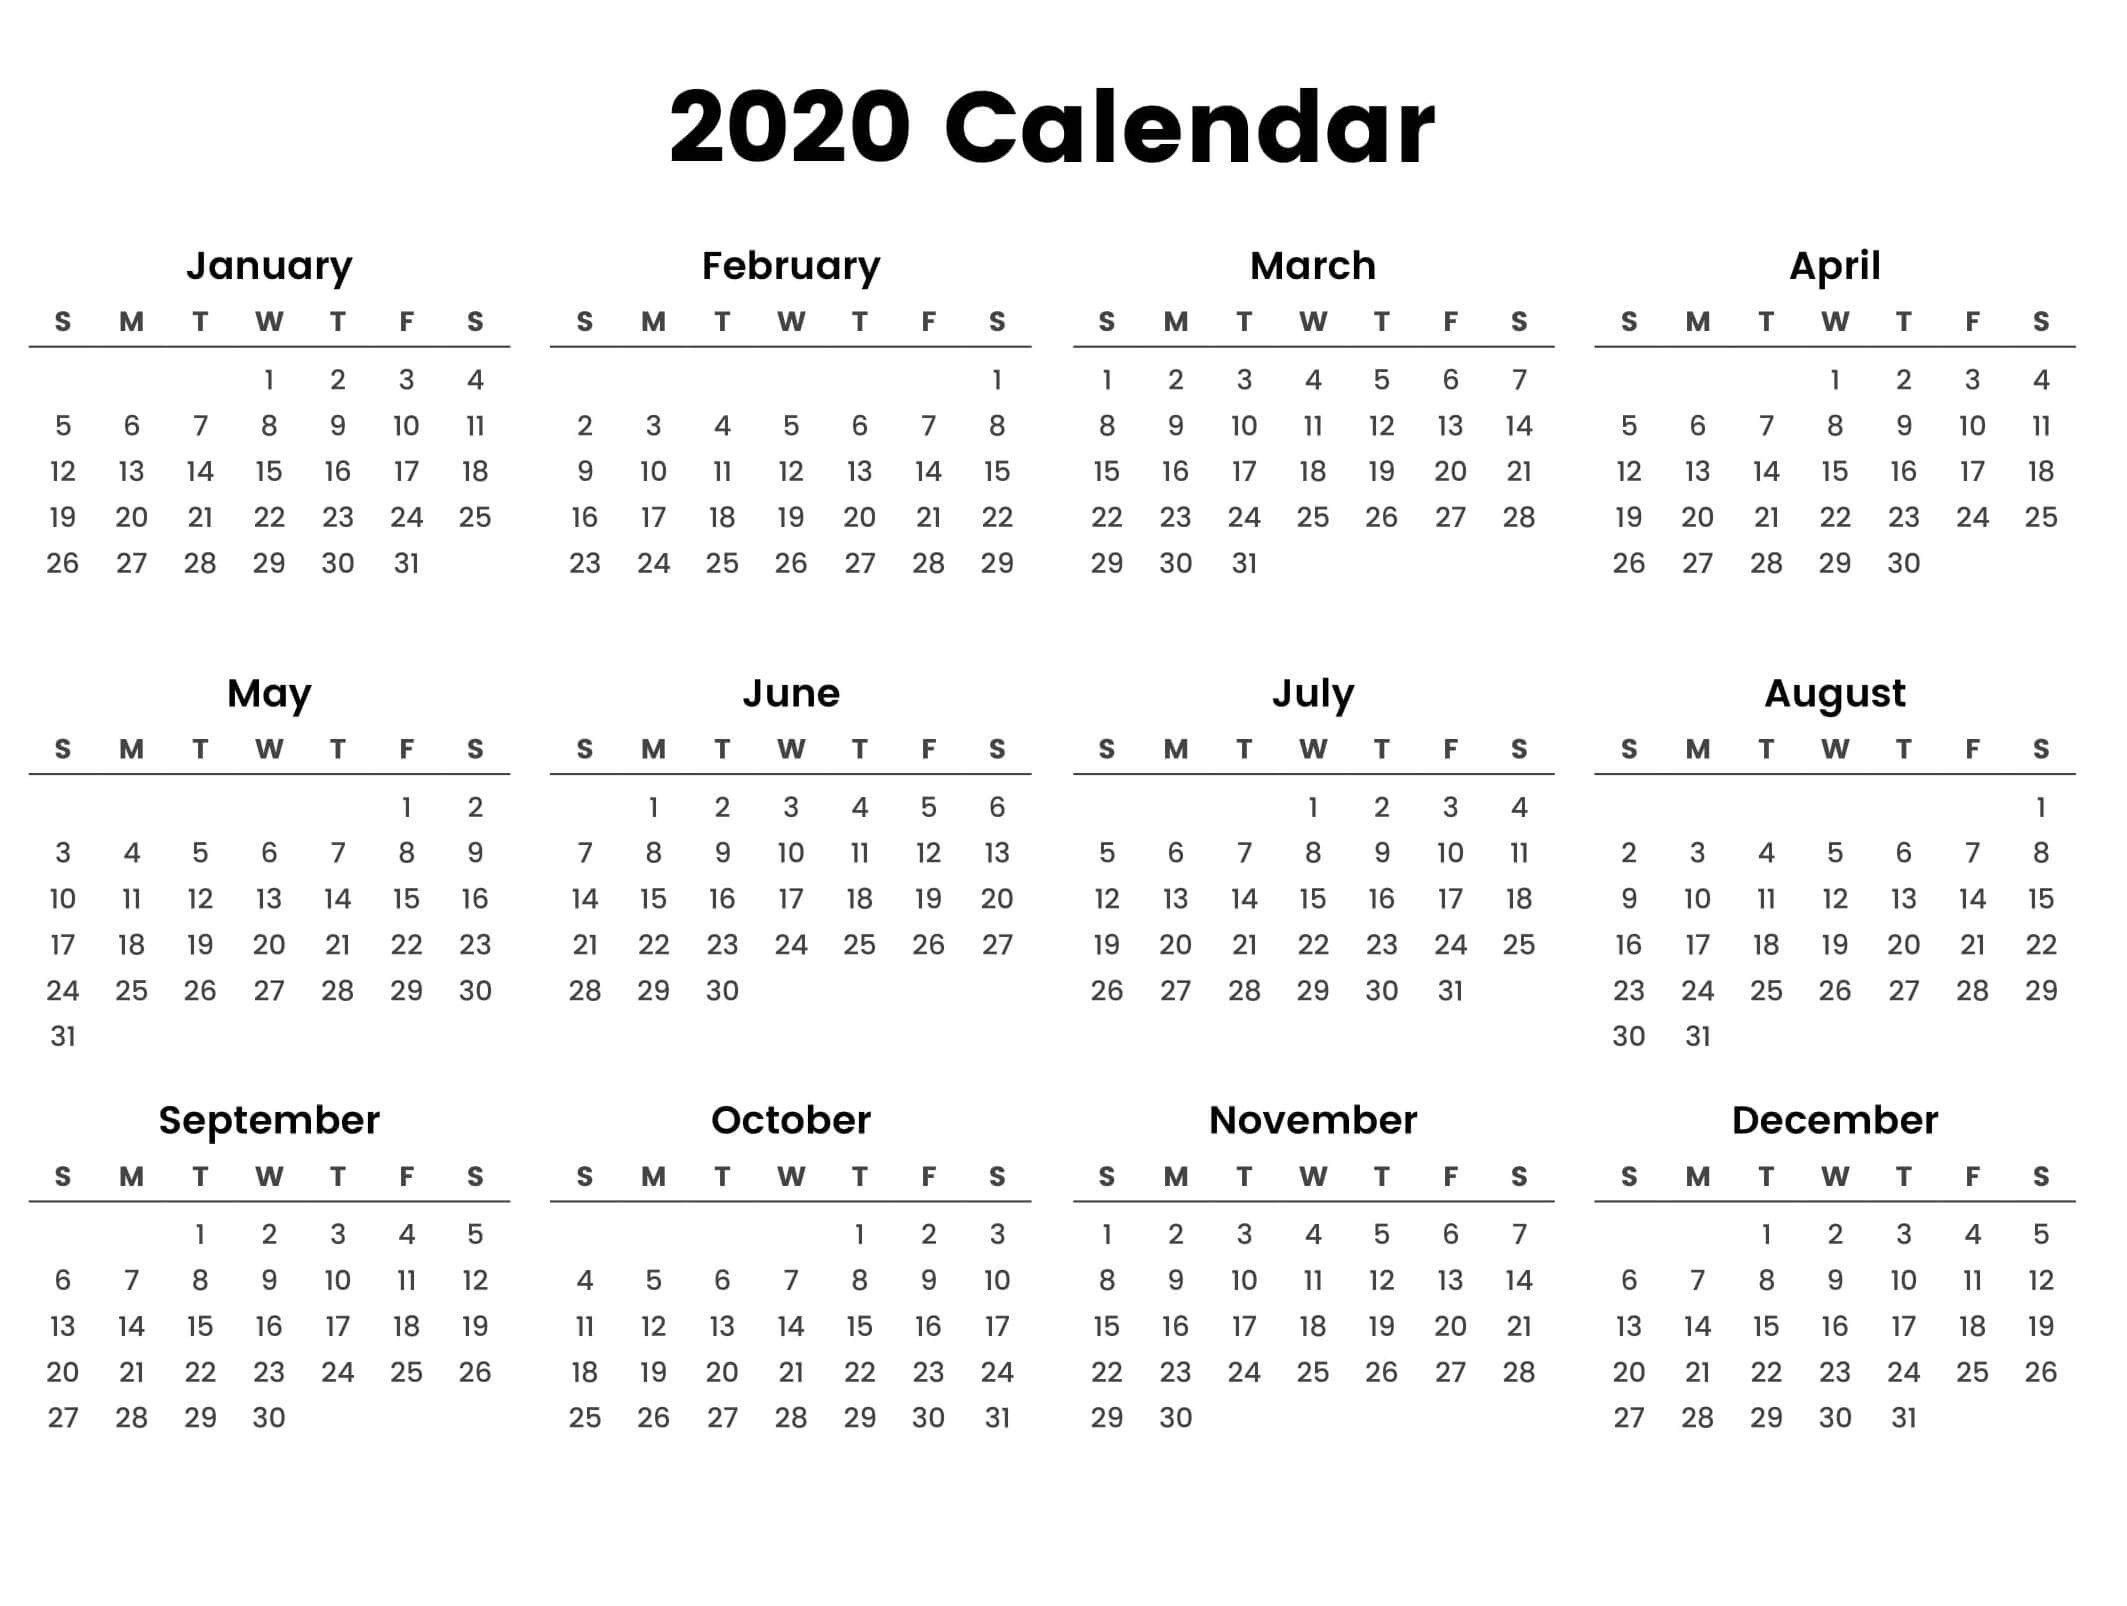 Large Yearly Calendar 2020 With Notes Pdf - Set Your Plan inside 2020 Year At A Glance Calendar Free